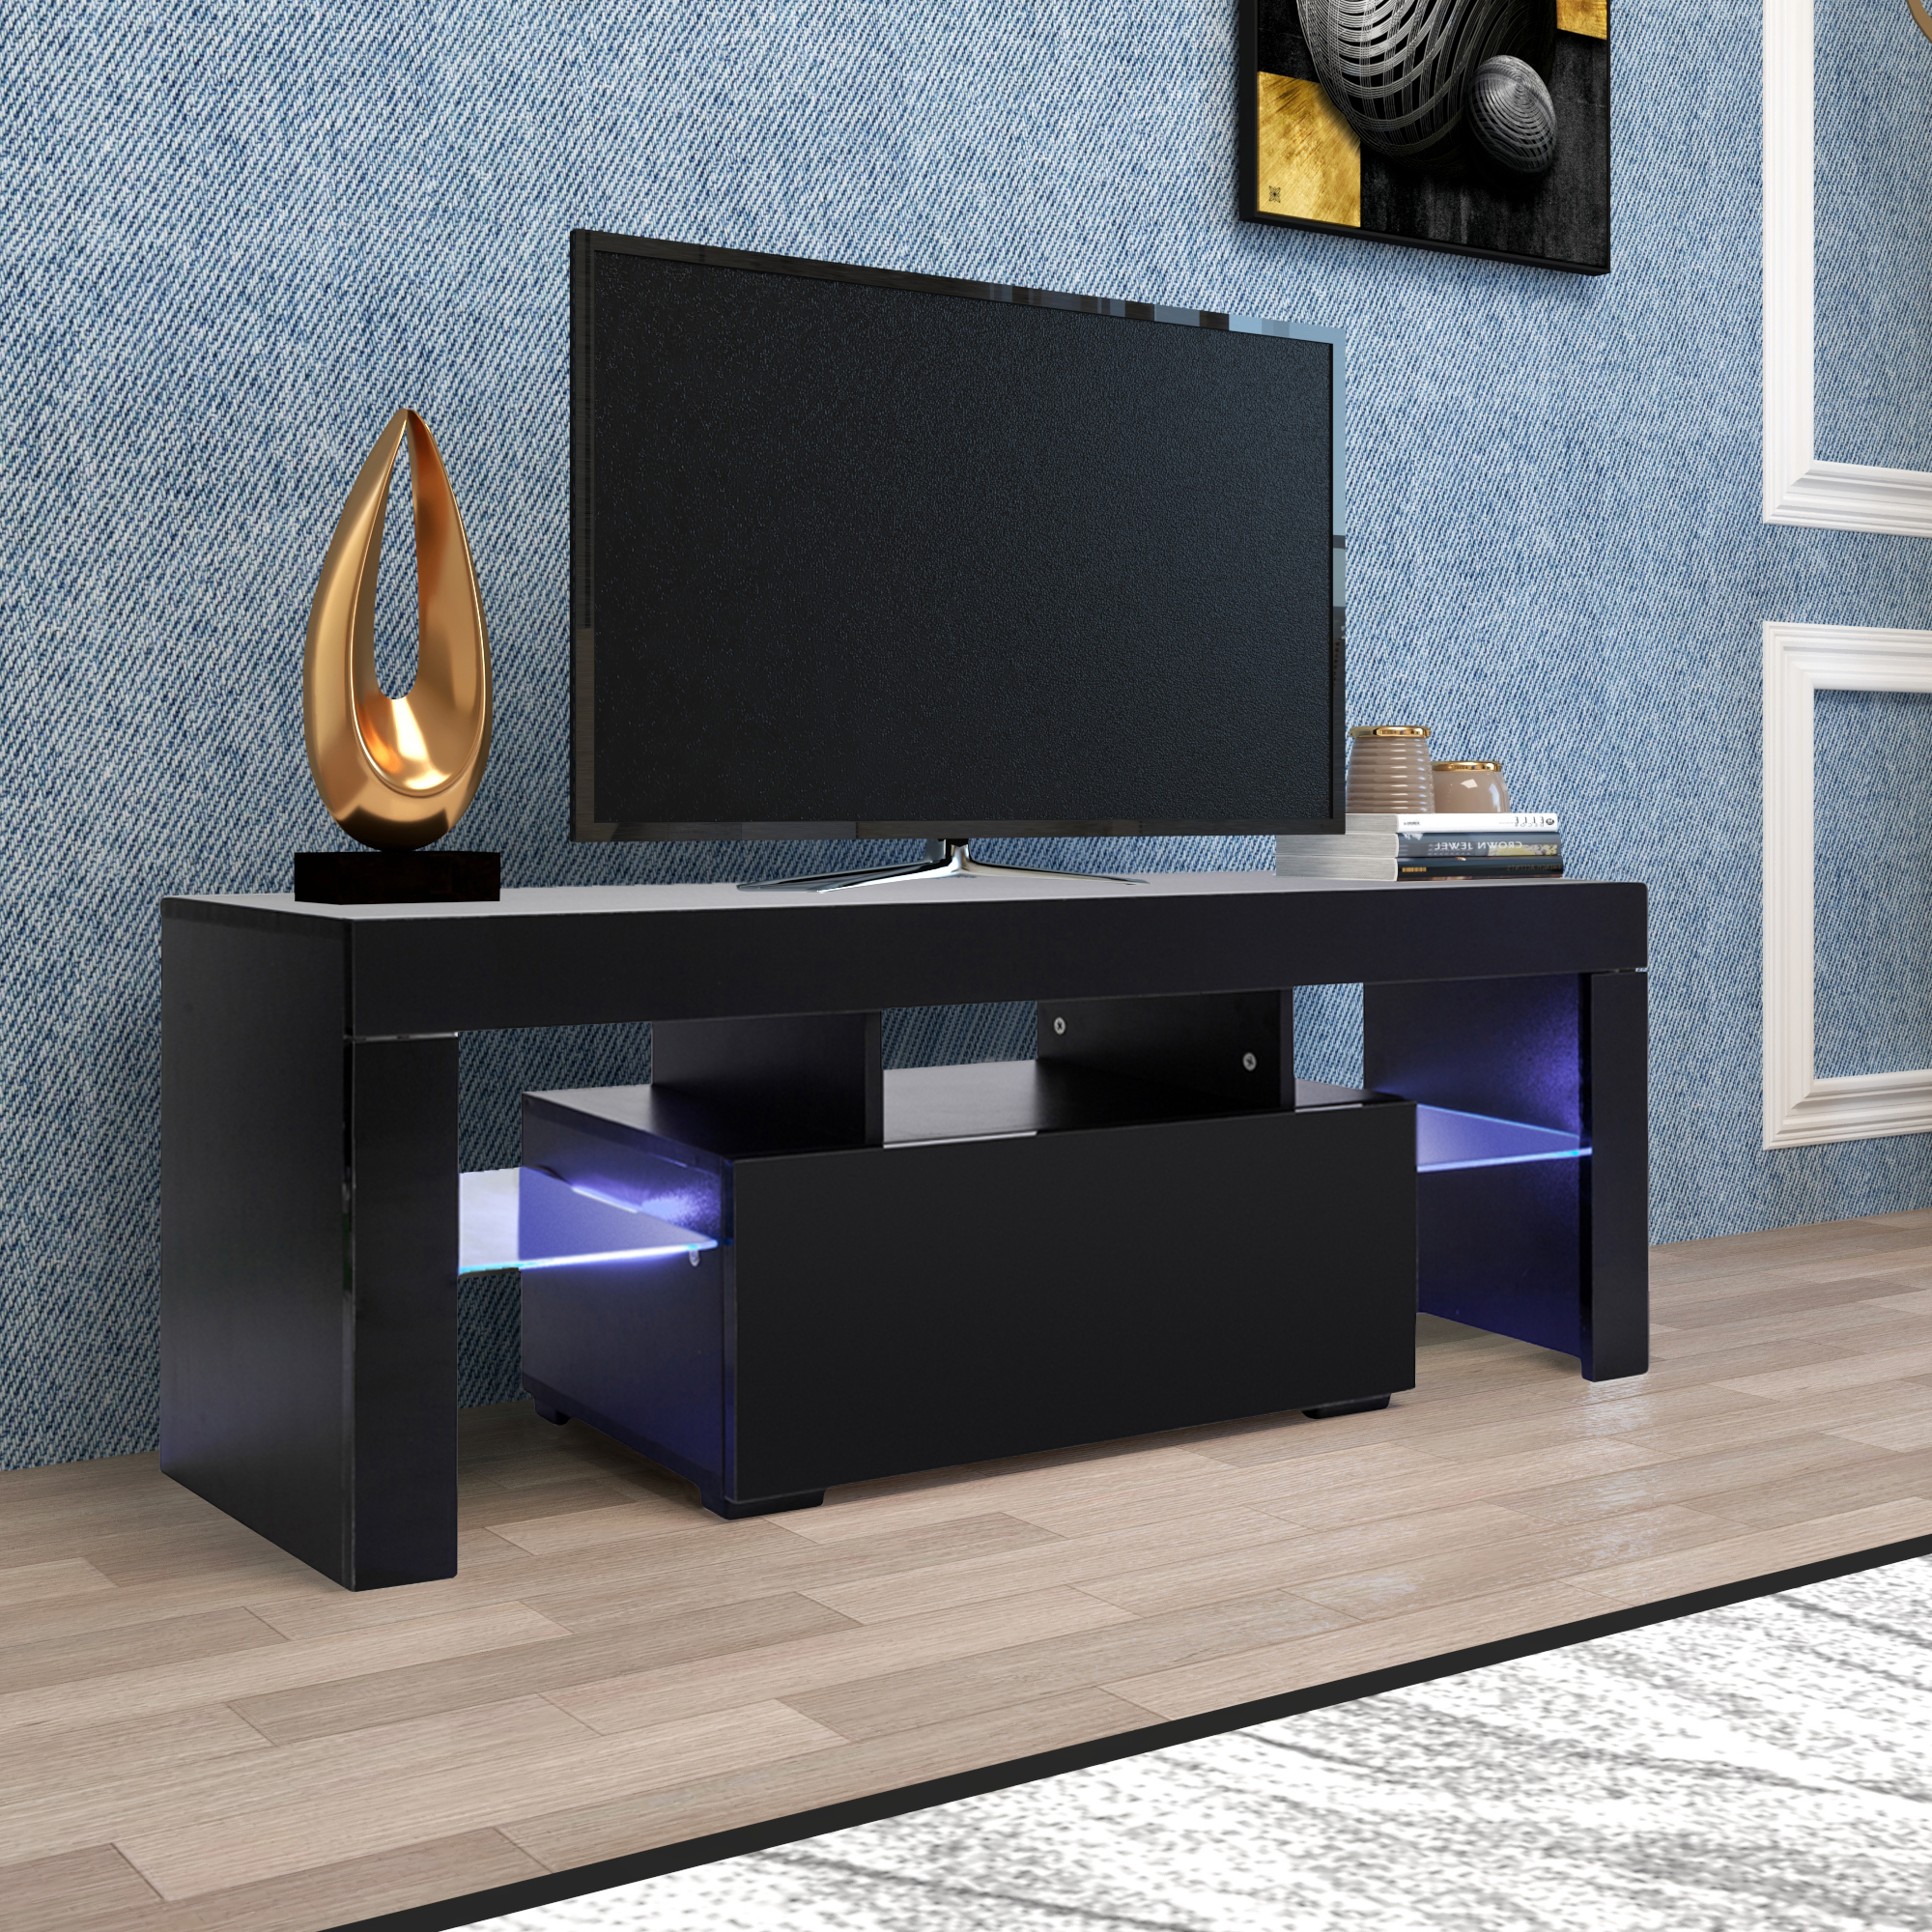 Entertainment Centers And Tv Stands, Yofe Tv Stand With Intended For 57'' Led Tv Stands Cabinet (View 15 of 20)